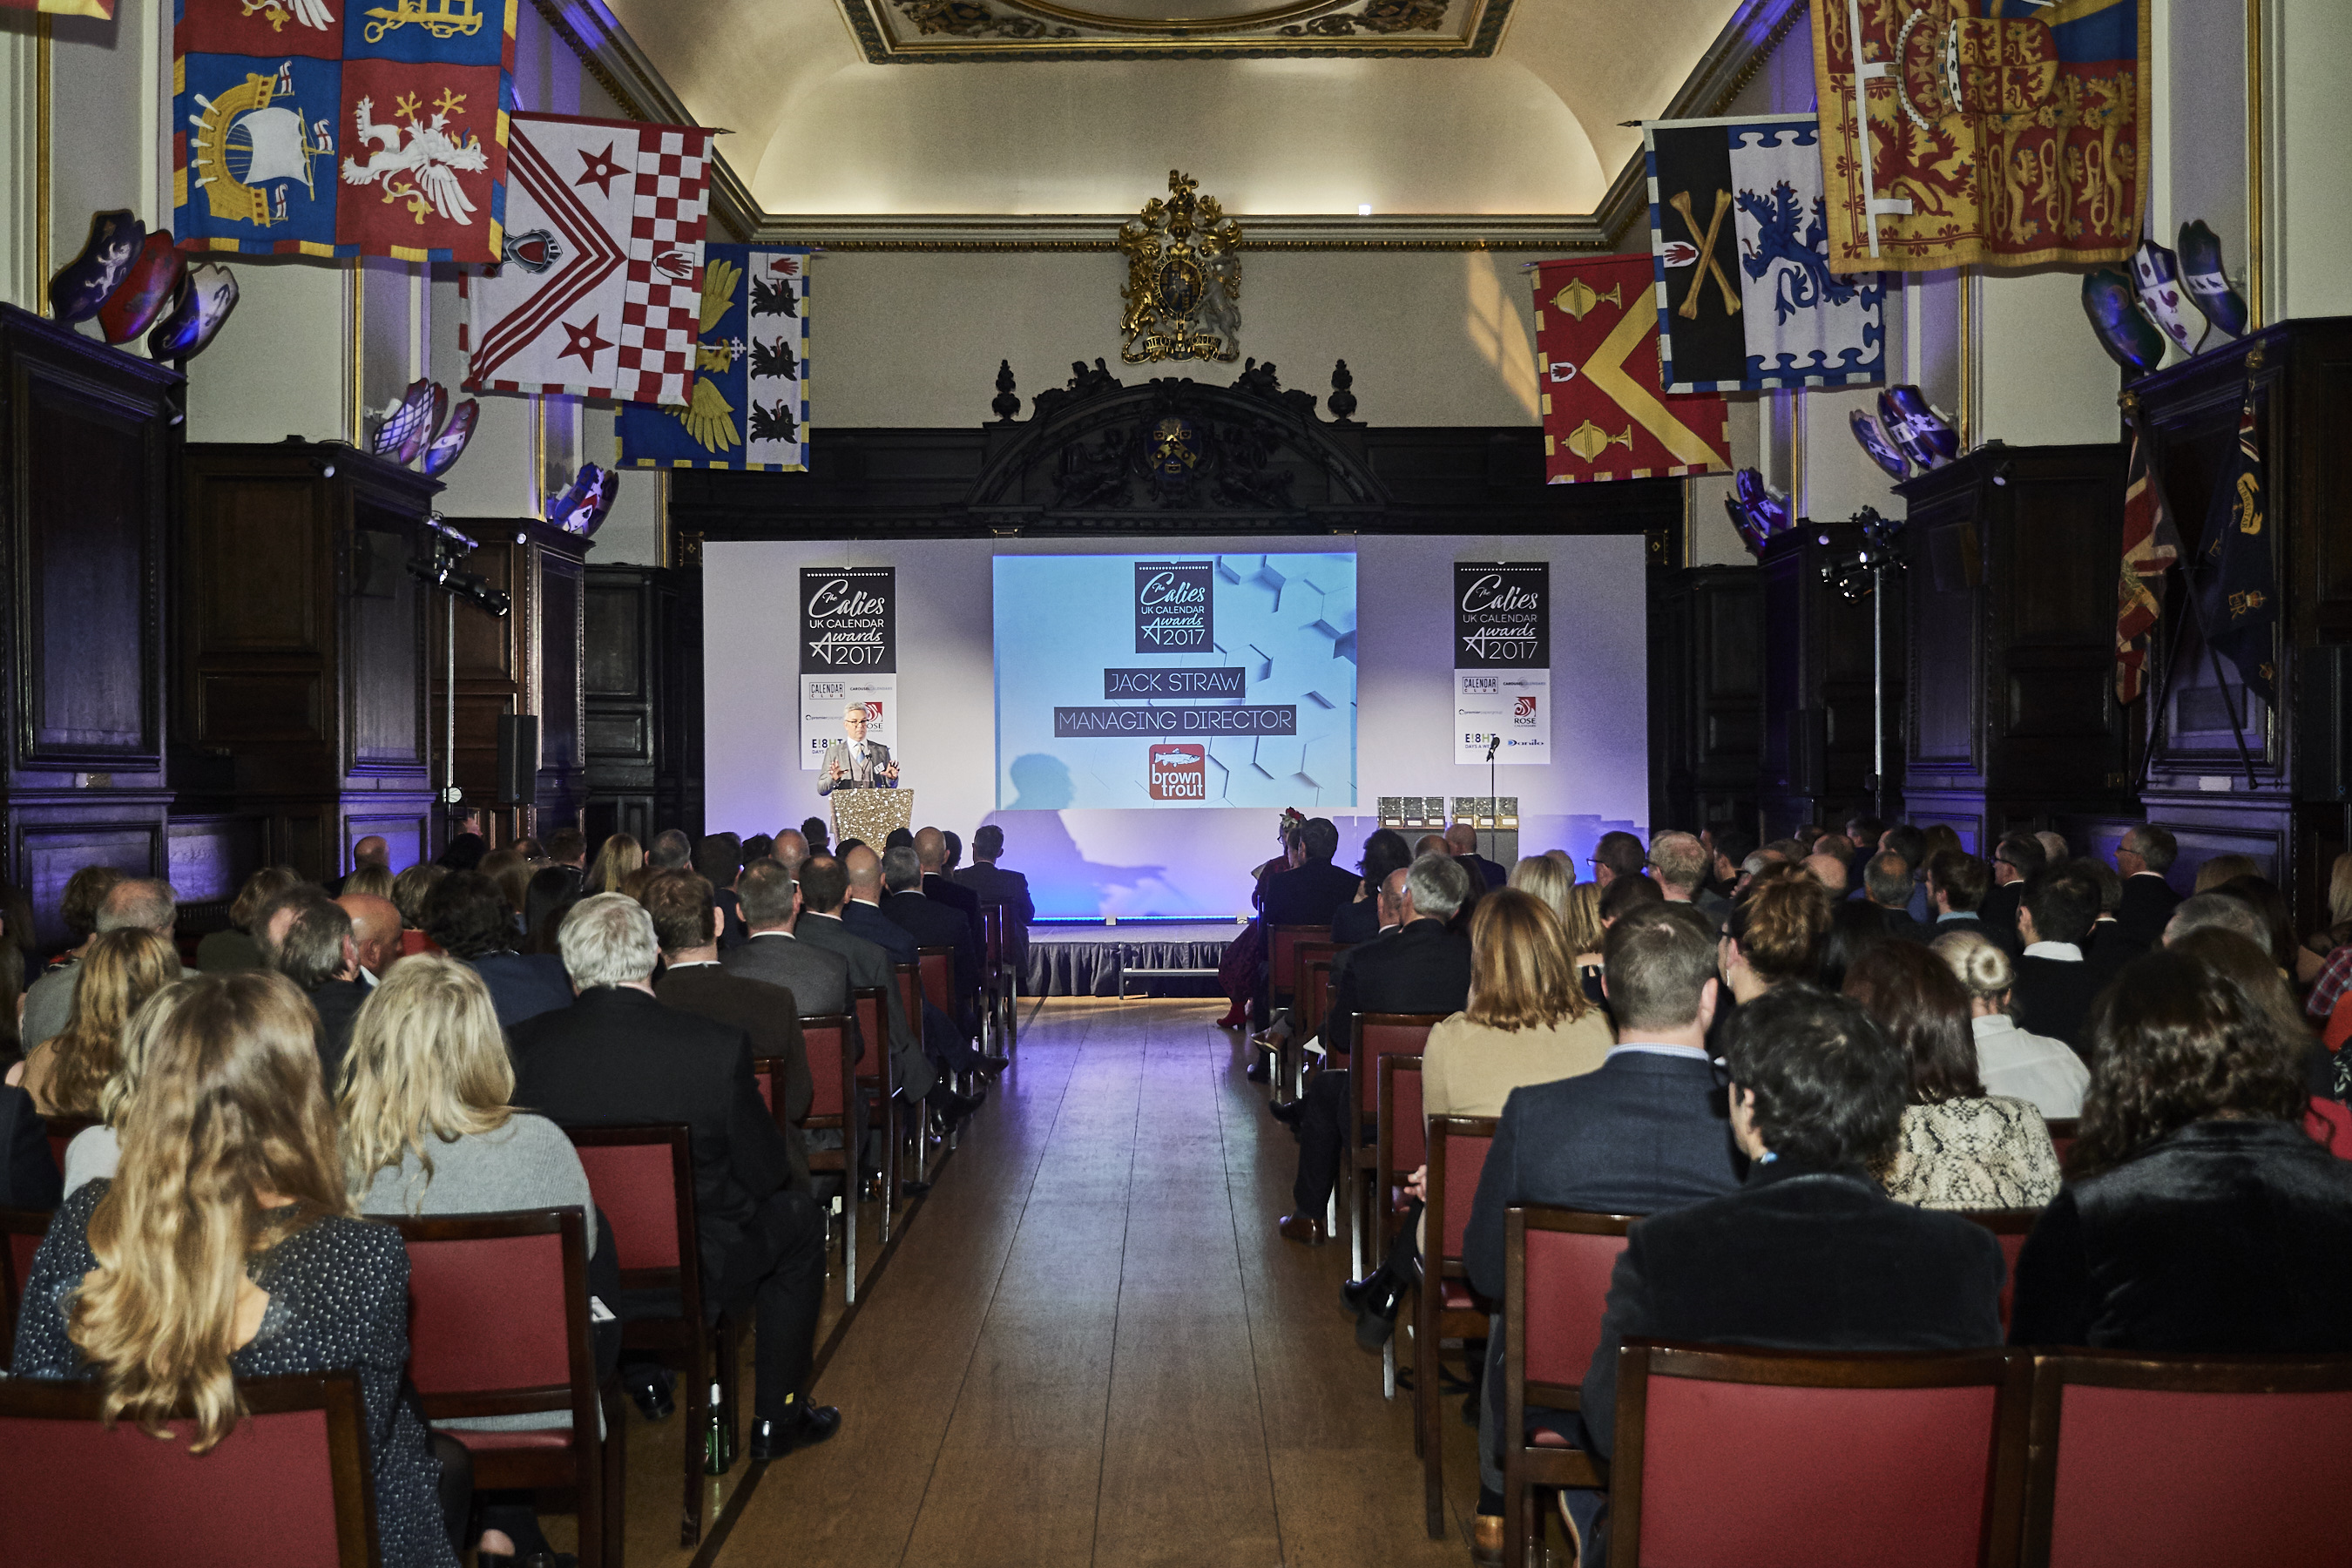 Above: Last year's inaugural Calies saw a packed house at the historic Stationers' Hall.